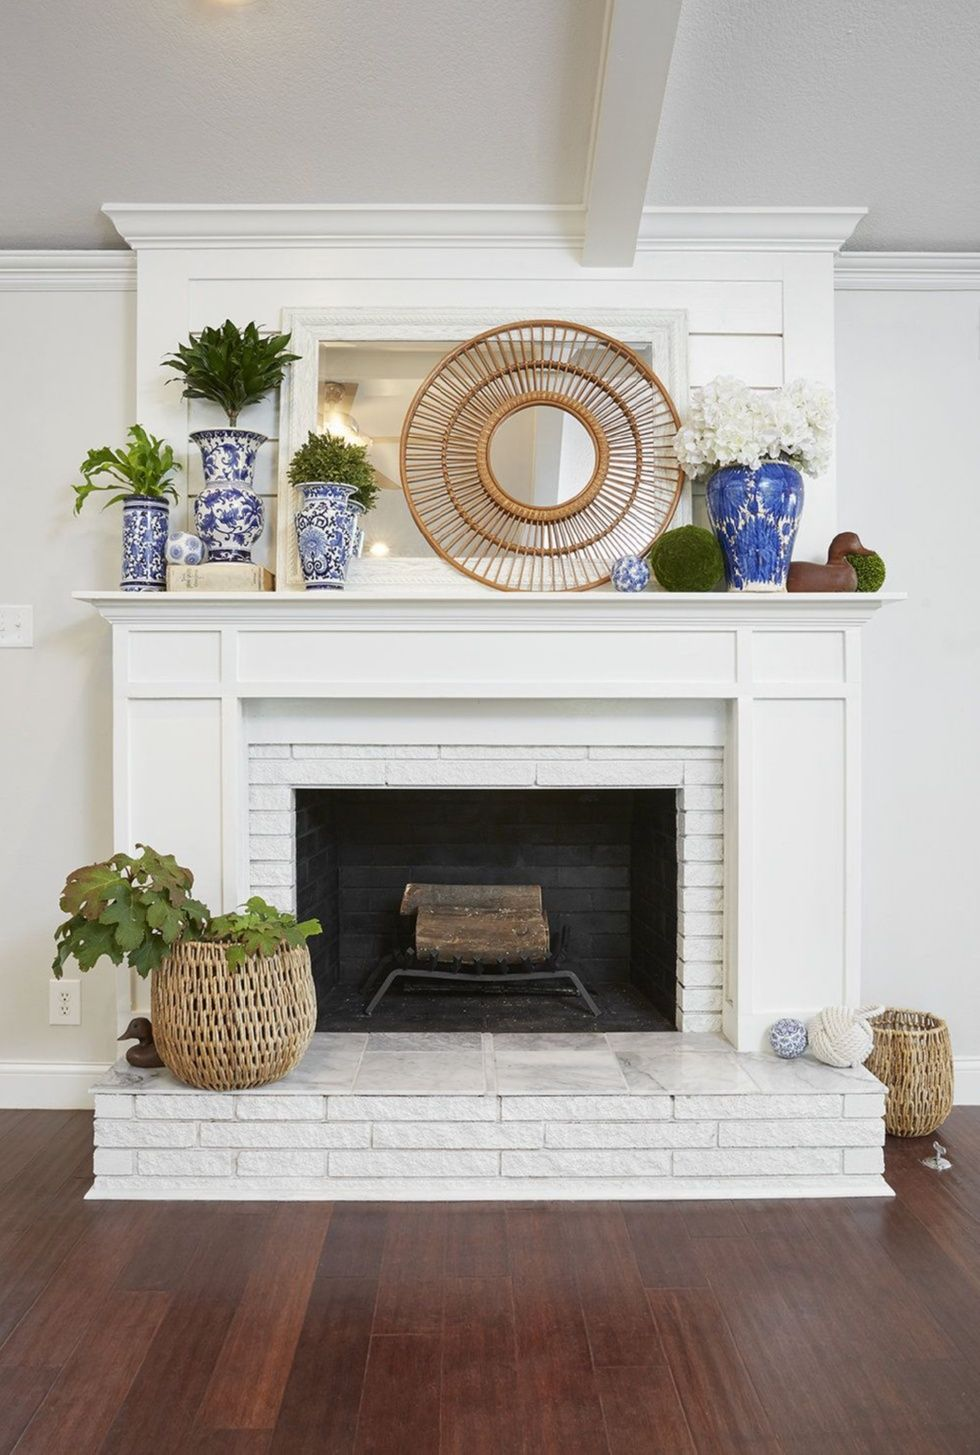 Farmhouse Fireplace Decor. How to Paint Brick def. want